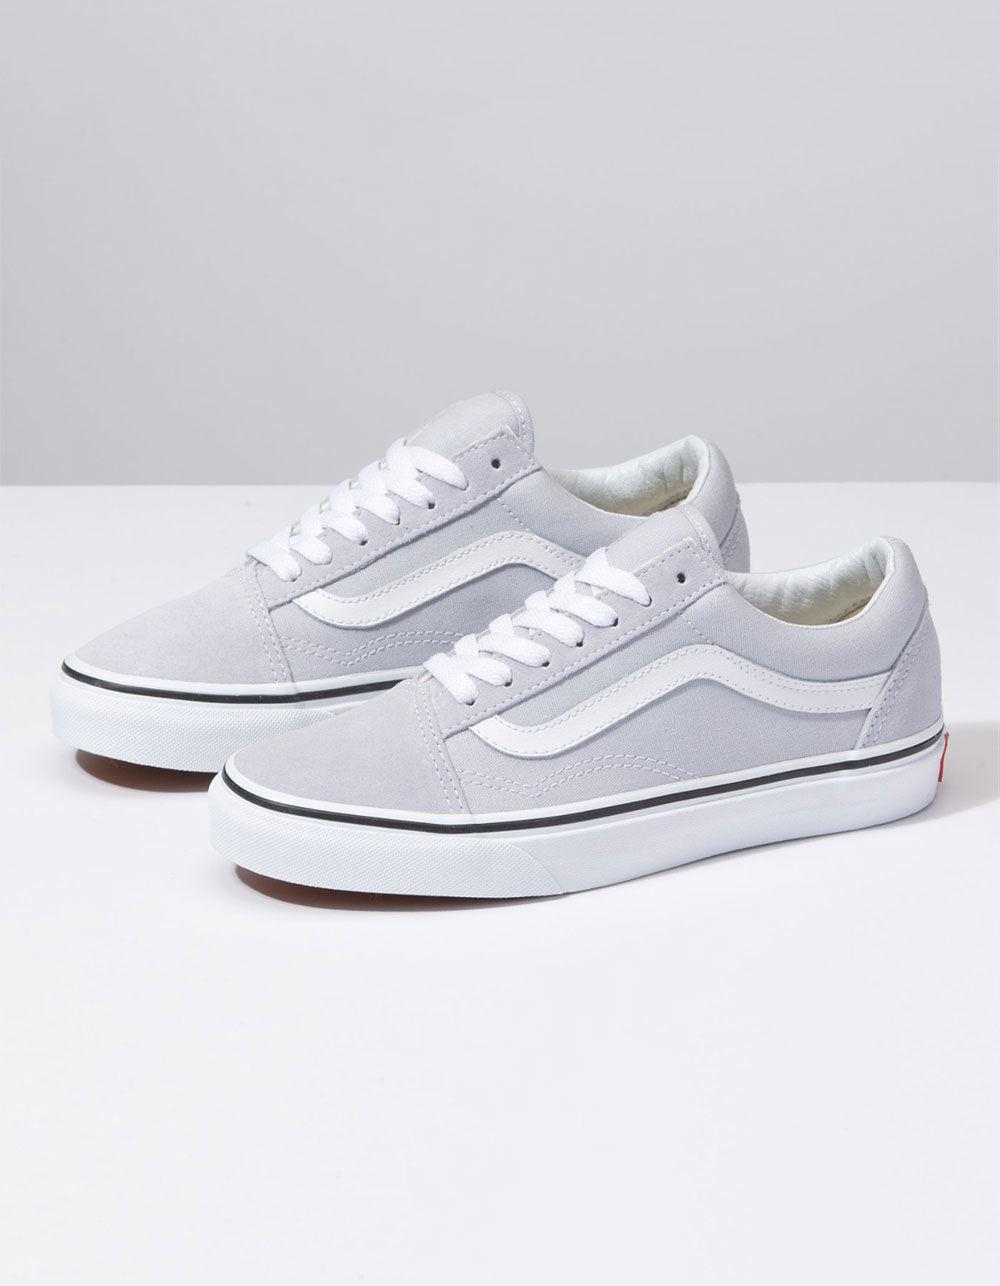 Lyst - Vans Old Skool Gray Dawn   True White Womens Shoes in White 5c47908a5